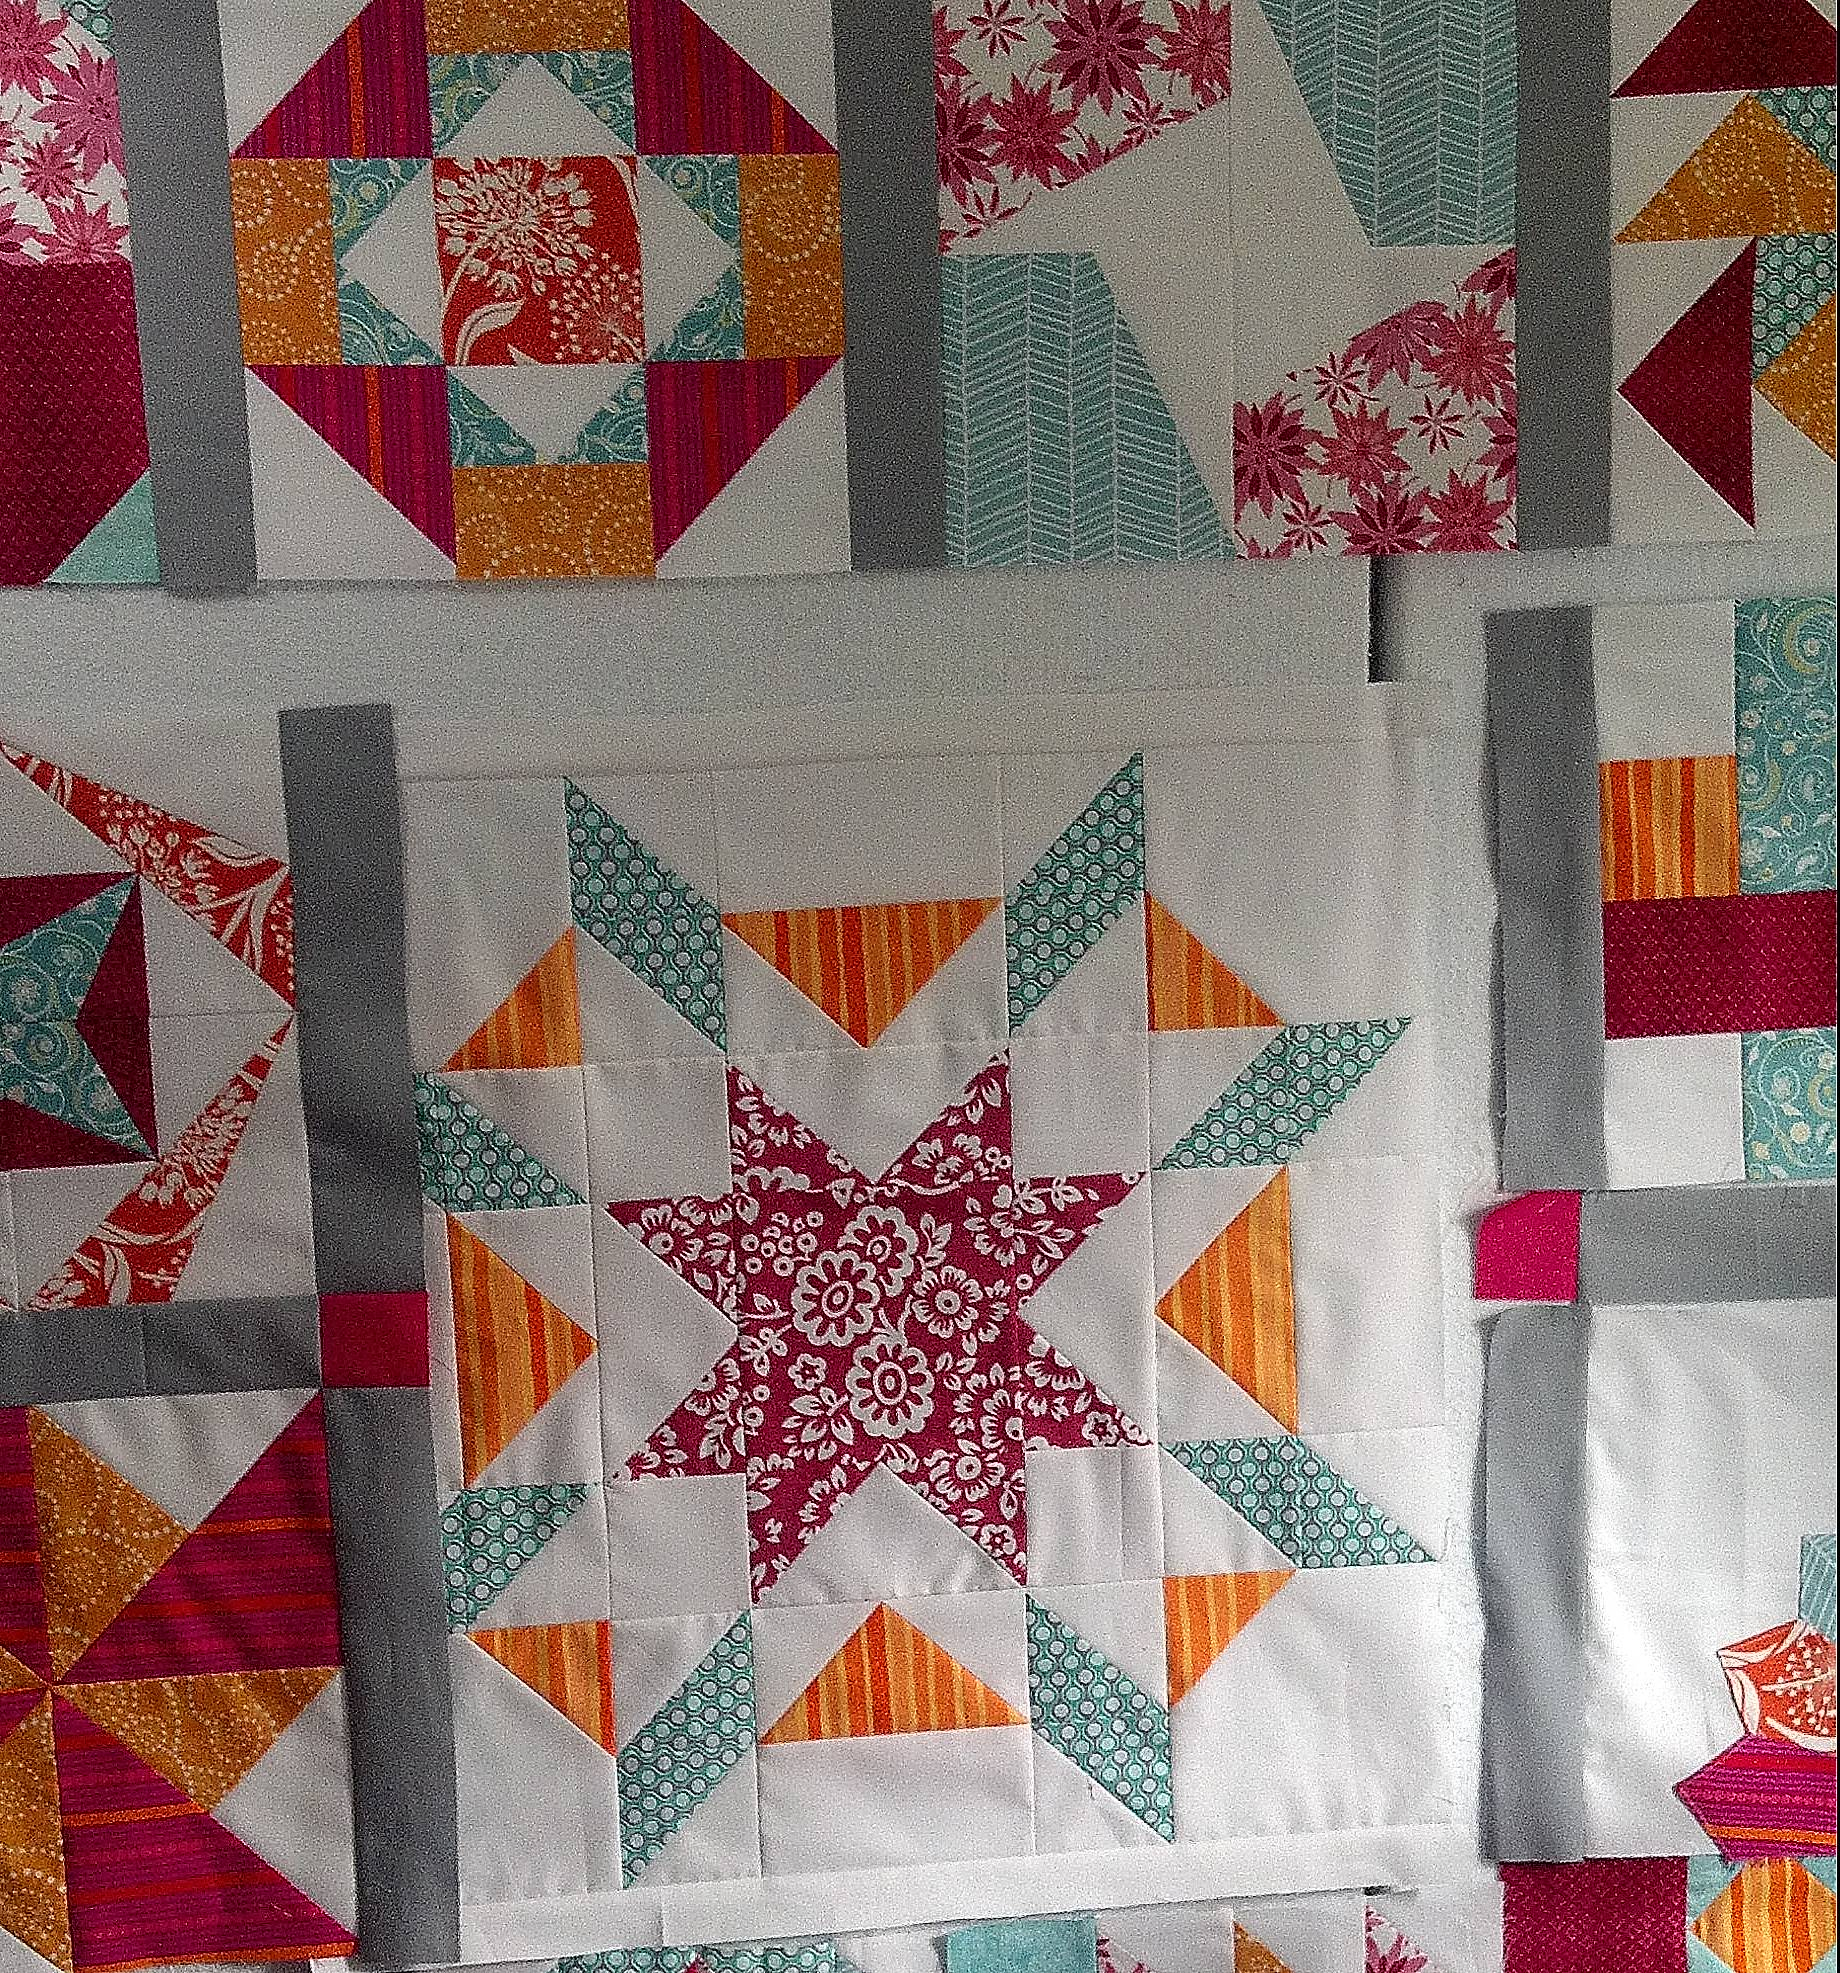 Sew Happy Quilt QAL progress - December 2012